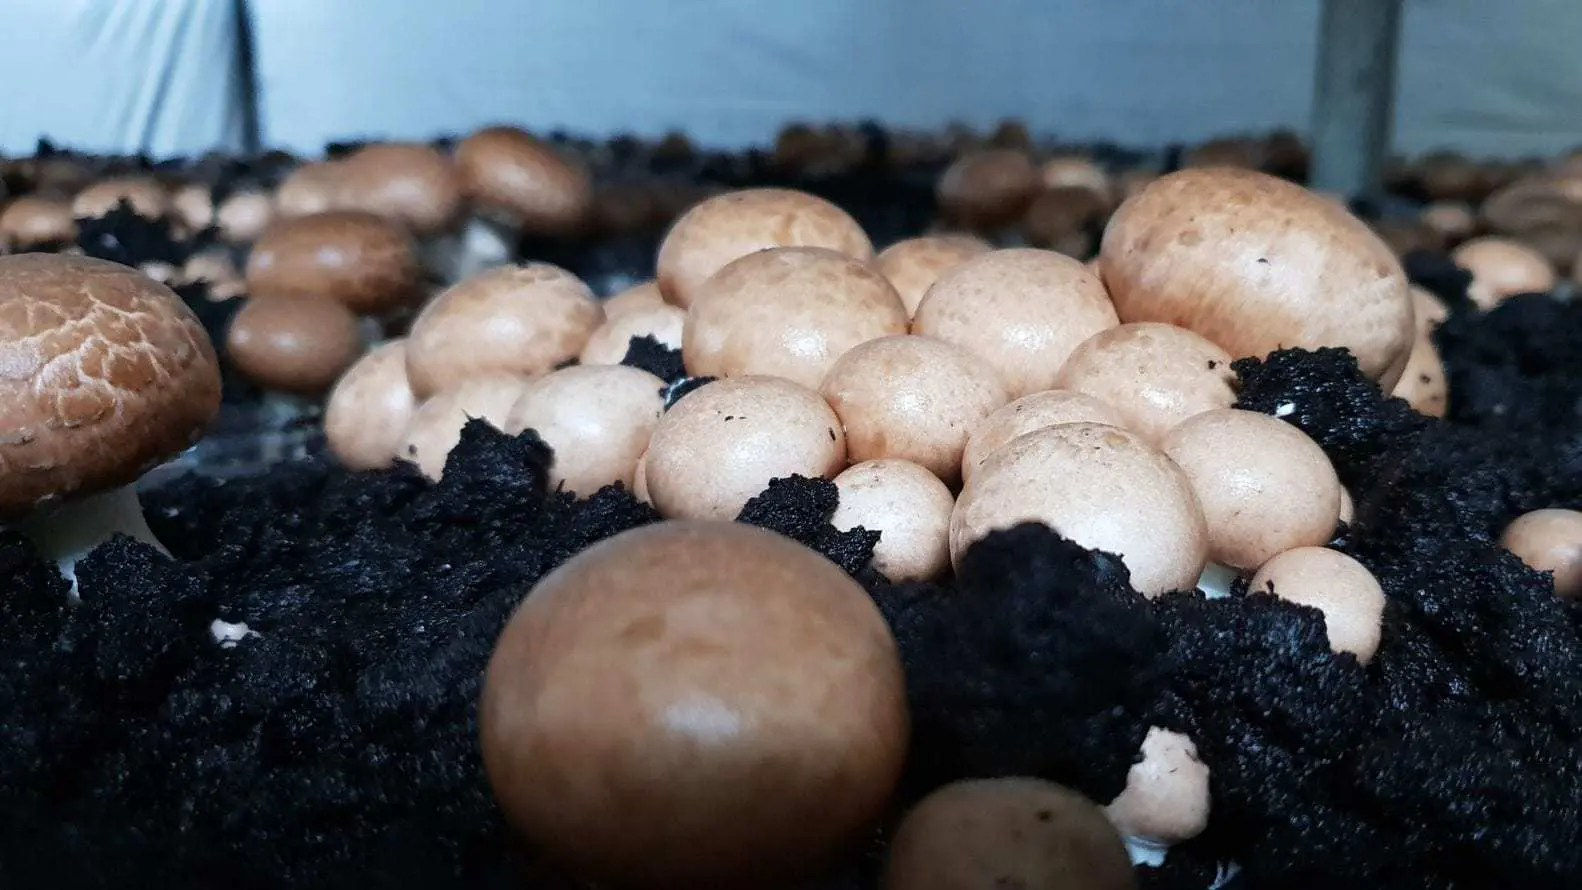 Weird mushroom facts we bet you didn't know - FoodForMzansi